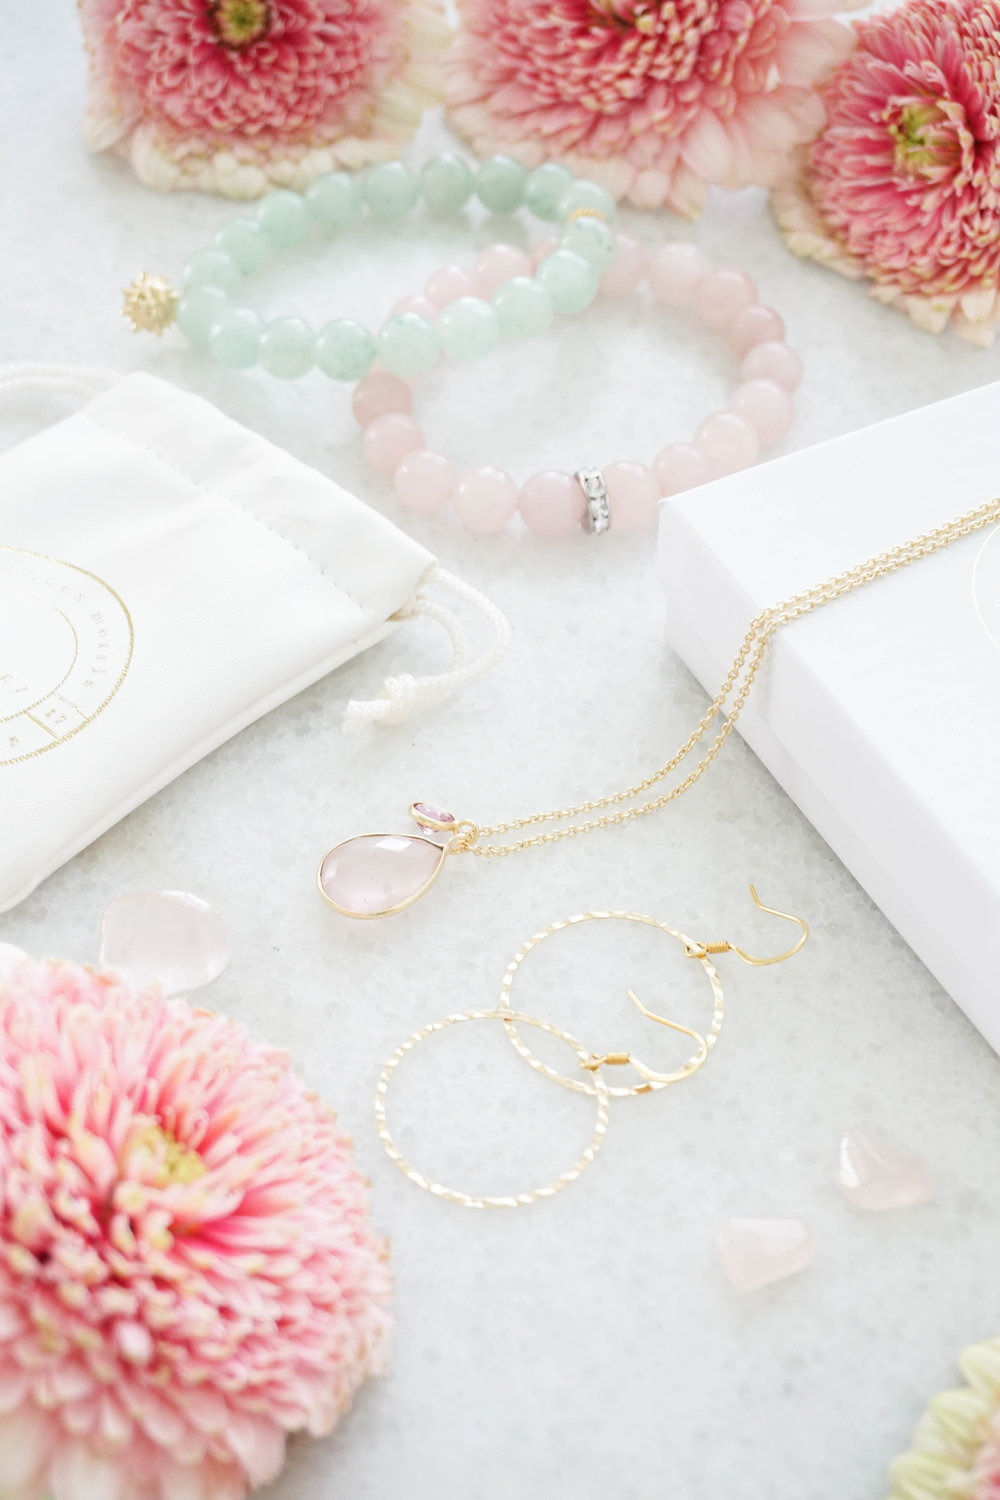 jewelry-commercial-photography-photoshoot-s-frances-jewelry-photoshoot-bracelets-earrings-necklaces-product-photography6.jpg